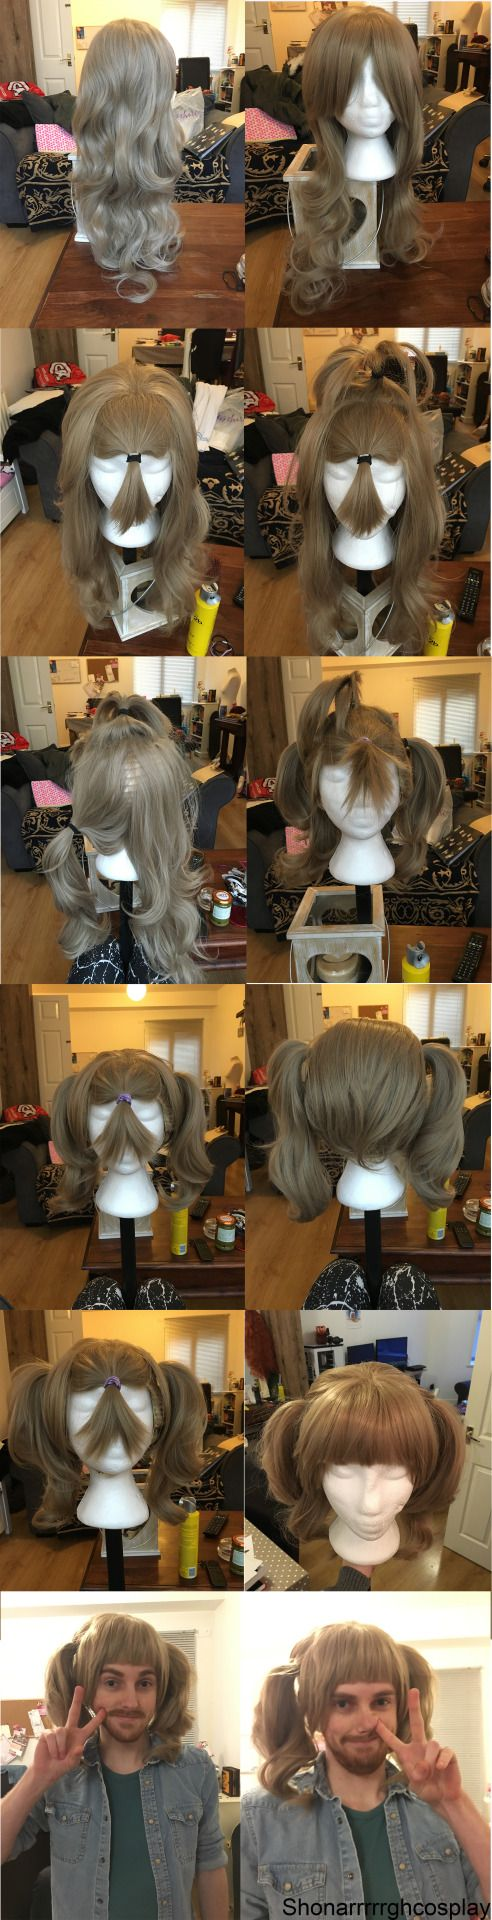 "living-for-wanderlust: "" So i made a wig tutorial on cosplay amino and the tutorial went down really well. I know i haven't really posted anything about cosplay on this tumblr but anyway here it is...."